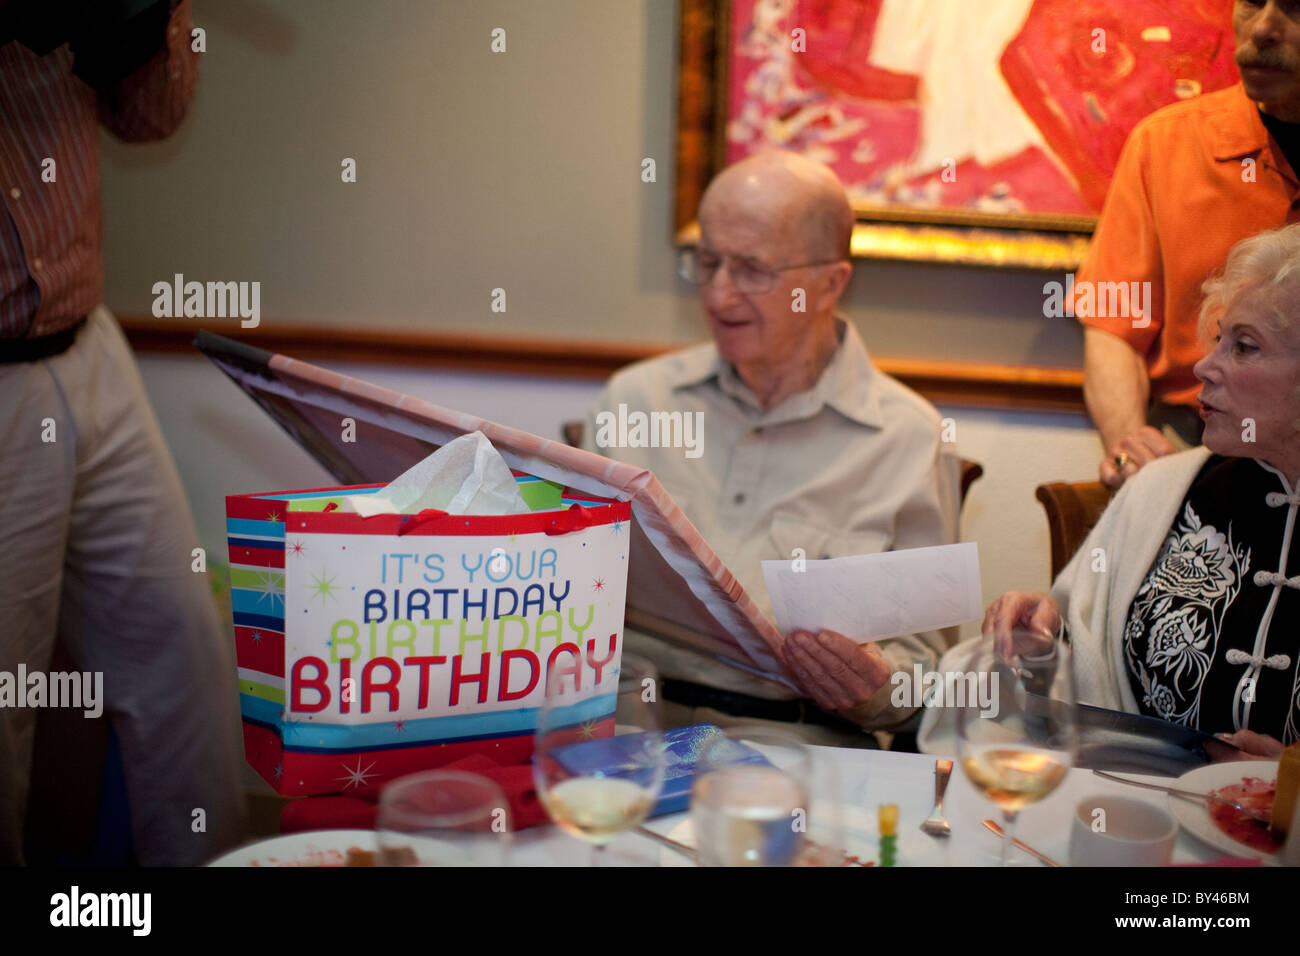 90 Year Old Anglo Male Looks At Gift During His Birthday Party A Restaurant In Austin Texas USA